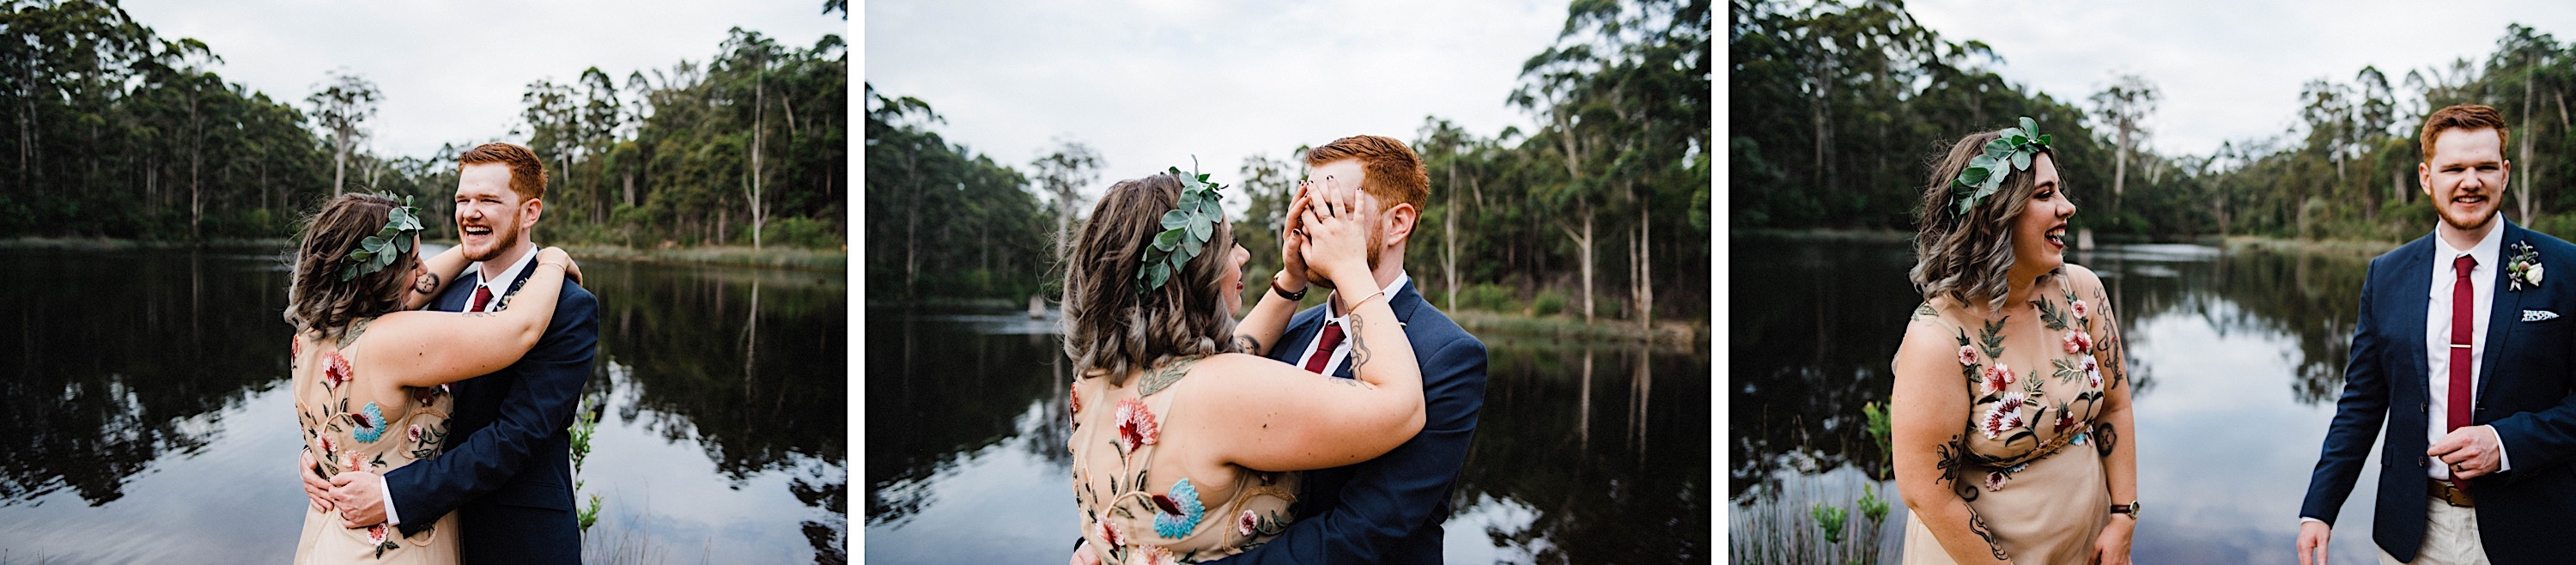 Wedding photography at the Donnelly River Village Dam